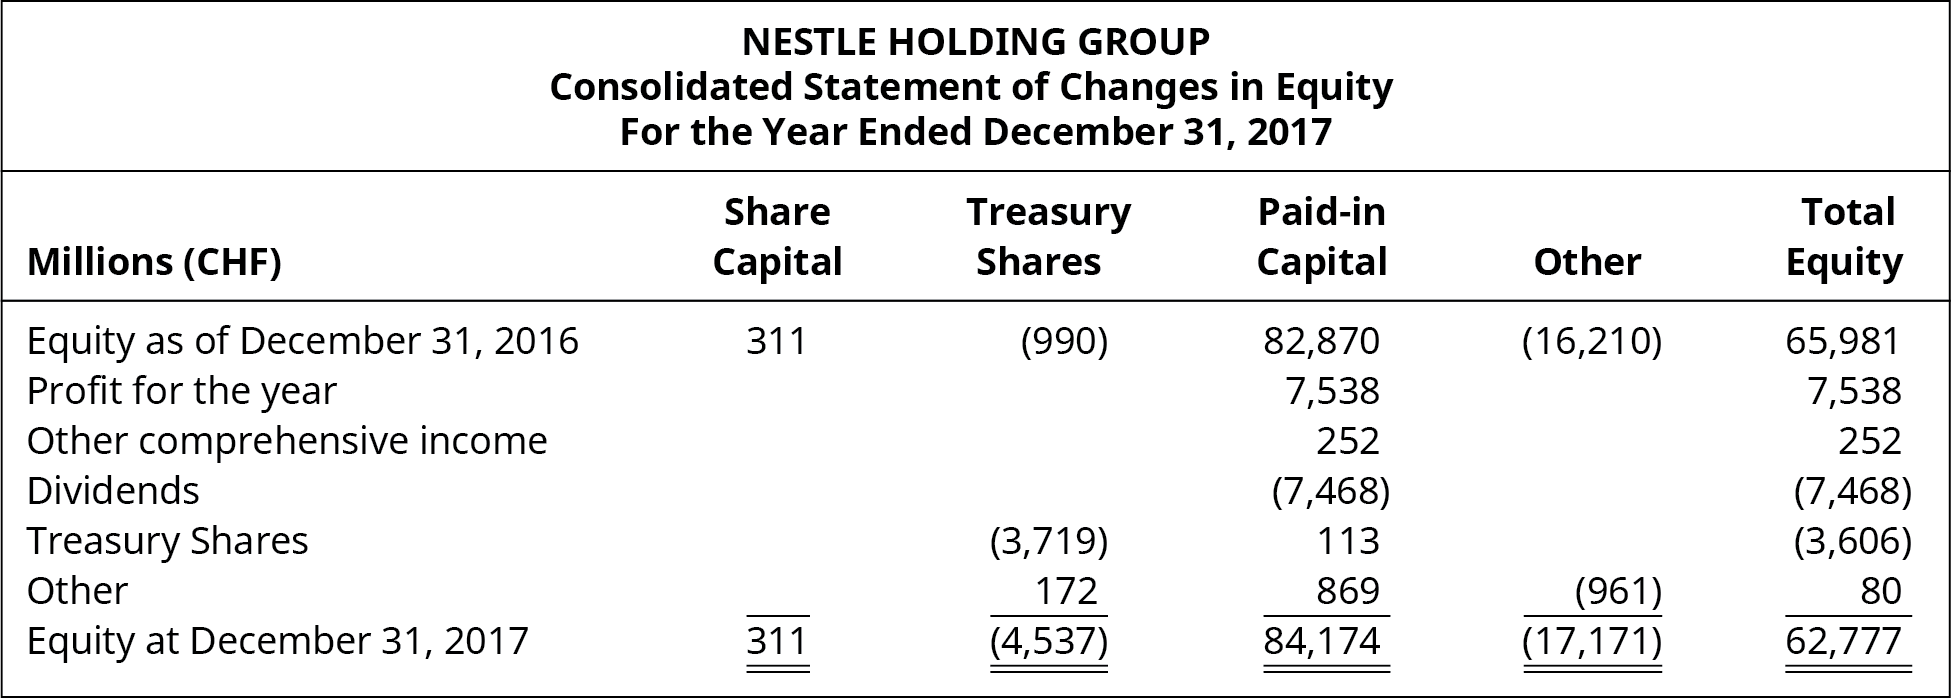 Nestle Holding Group, Consolidated Statement of Changes in Equity, For the Year Ended December 31, 2017. Millions (CHF), Share Capital, Treasury Shares, Paid-in Capital, Other, Total Equity (respectively): Equity as of December 31, 2016, 311, (990), 82,870, (16,210) 65,981. Profit for the year, -, -, 7,538, -, 7,538. Other comprehensive income, -, -, 252, -, 252. Dividends, -, -, (7,468), -, (7,468). Treasury shares, -, (3,719), 113, -, (3,606). Other, -, 172, 869, (961), 80. Equity at December 31, 2017, 311, (4,537), 84,174, (17,171), 62,777.